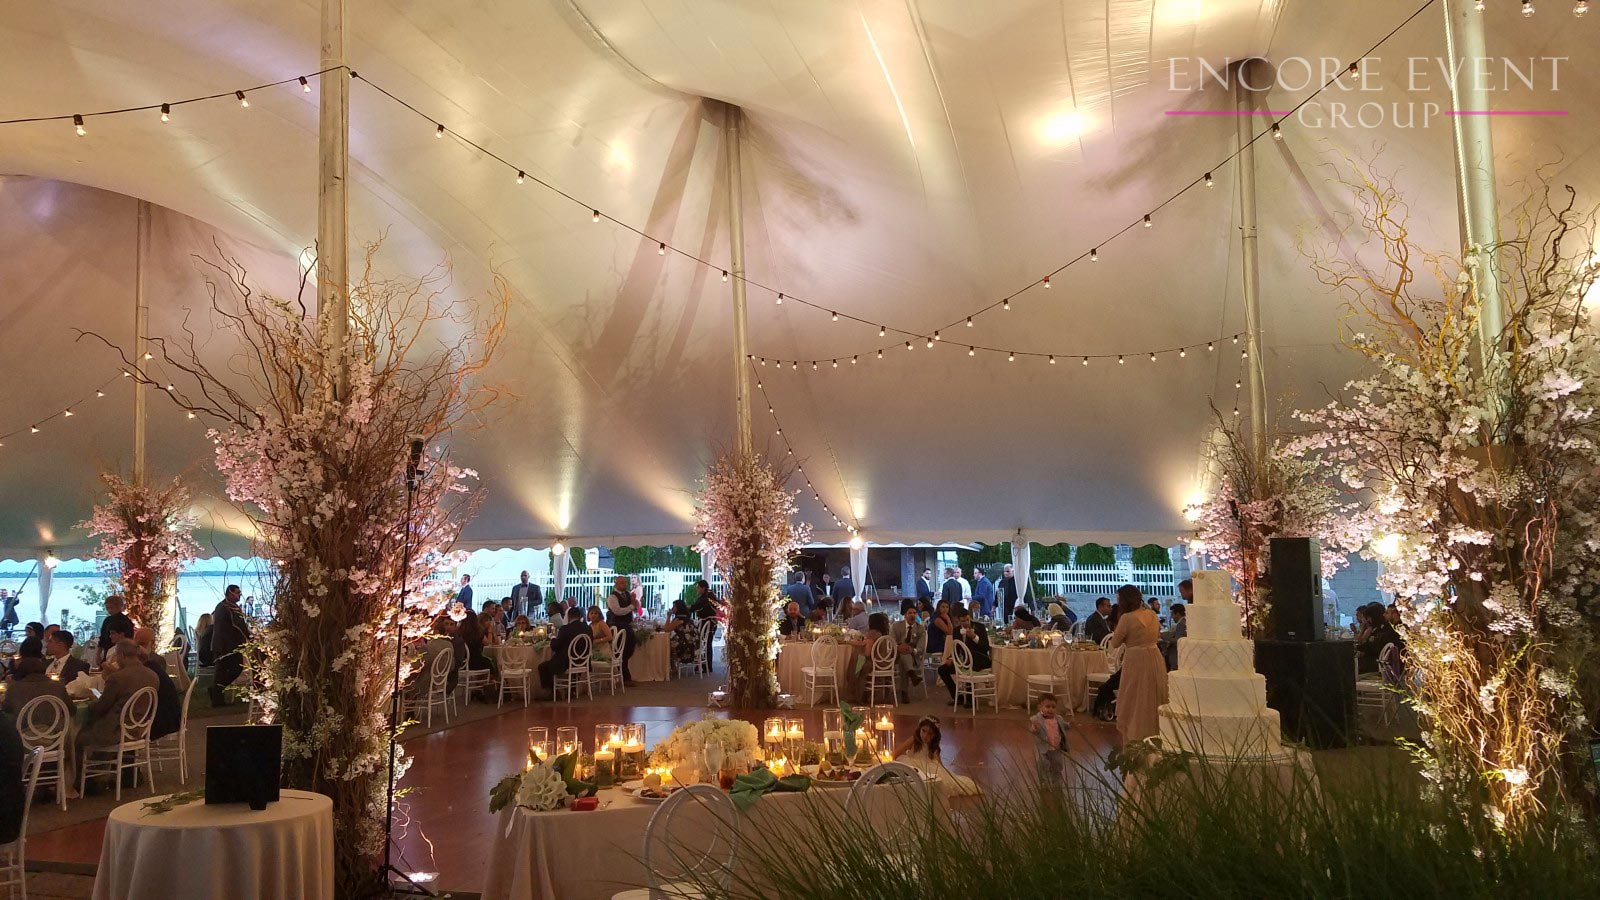 City Of Lights Brings In A Secondary Color While Spotlighting Your Formalities Bistro Lighting Gives You Warm Rustic Theme